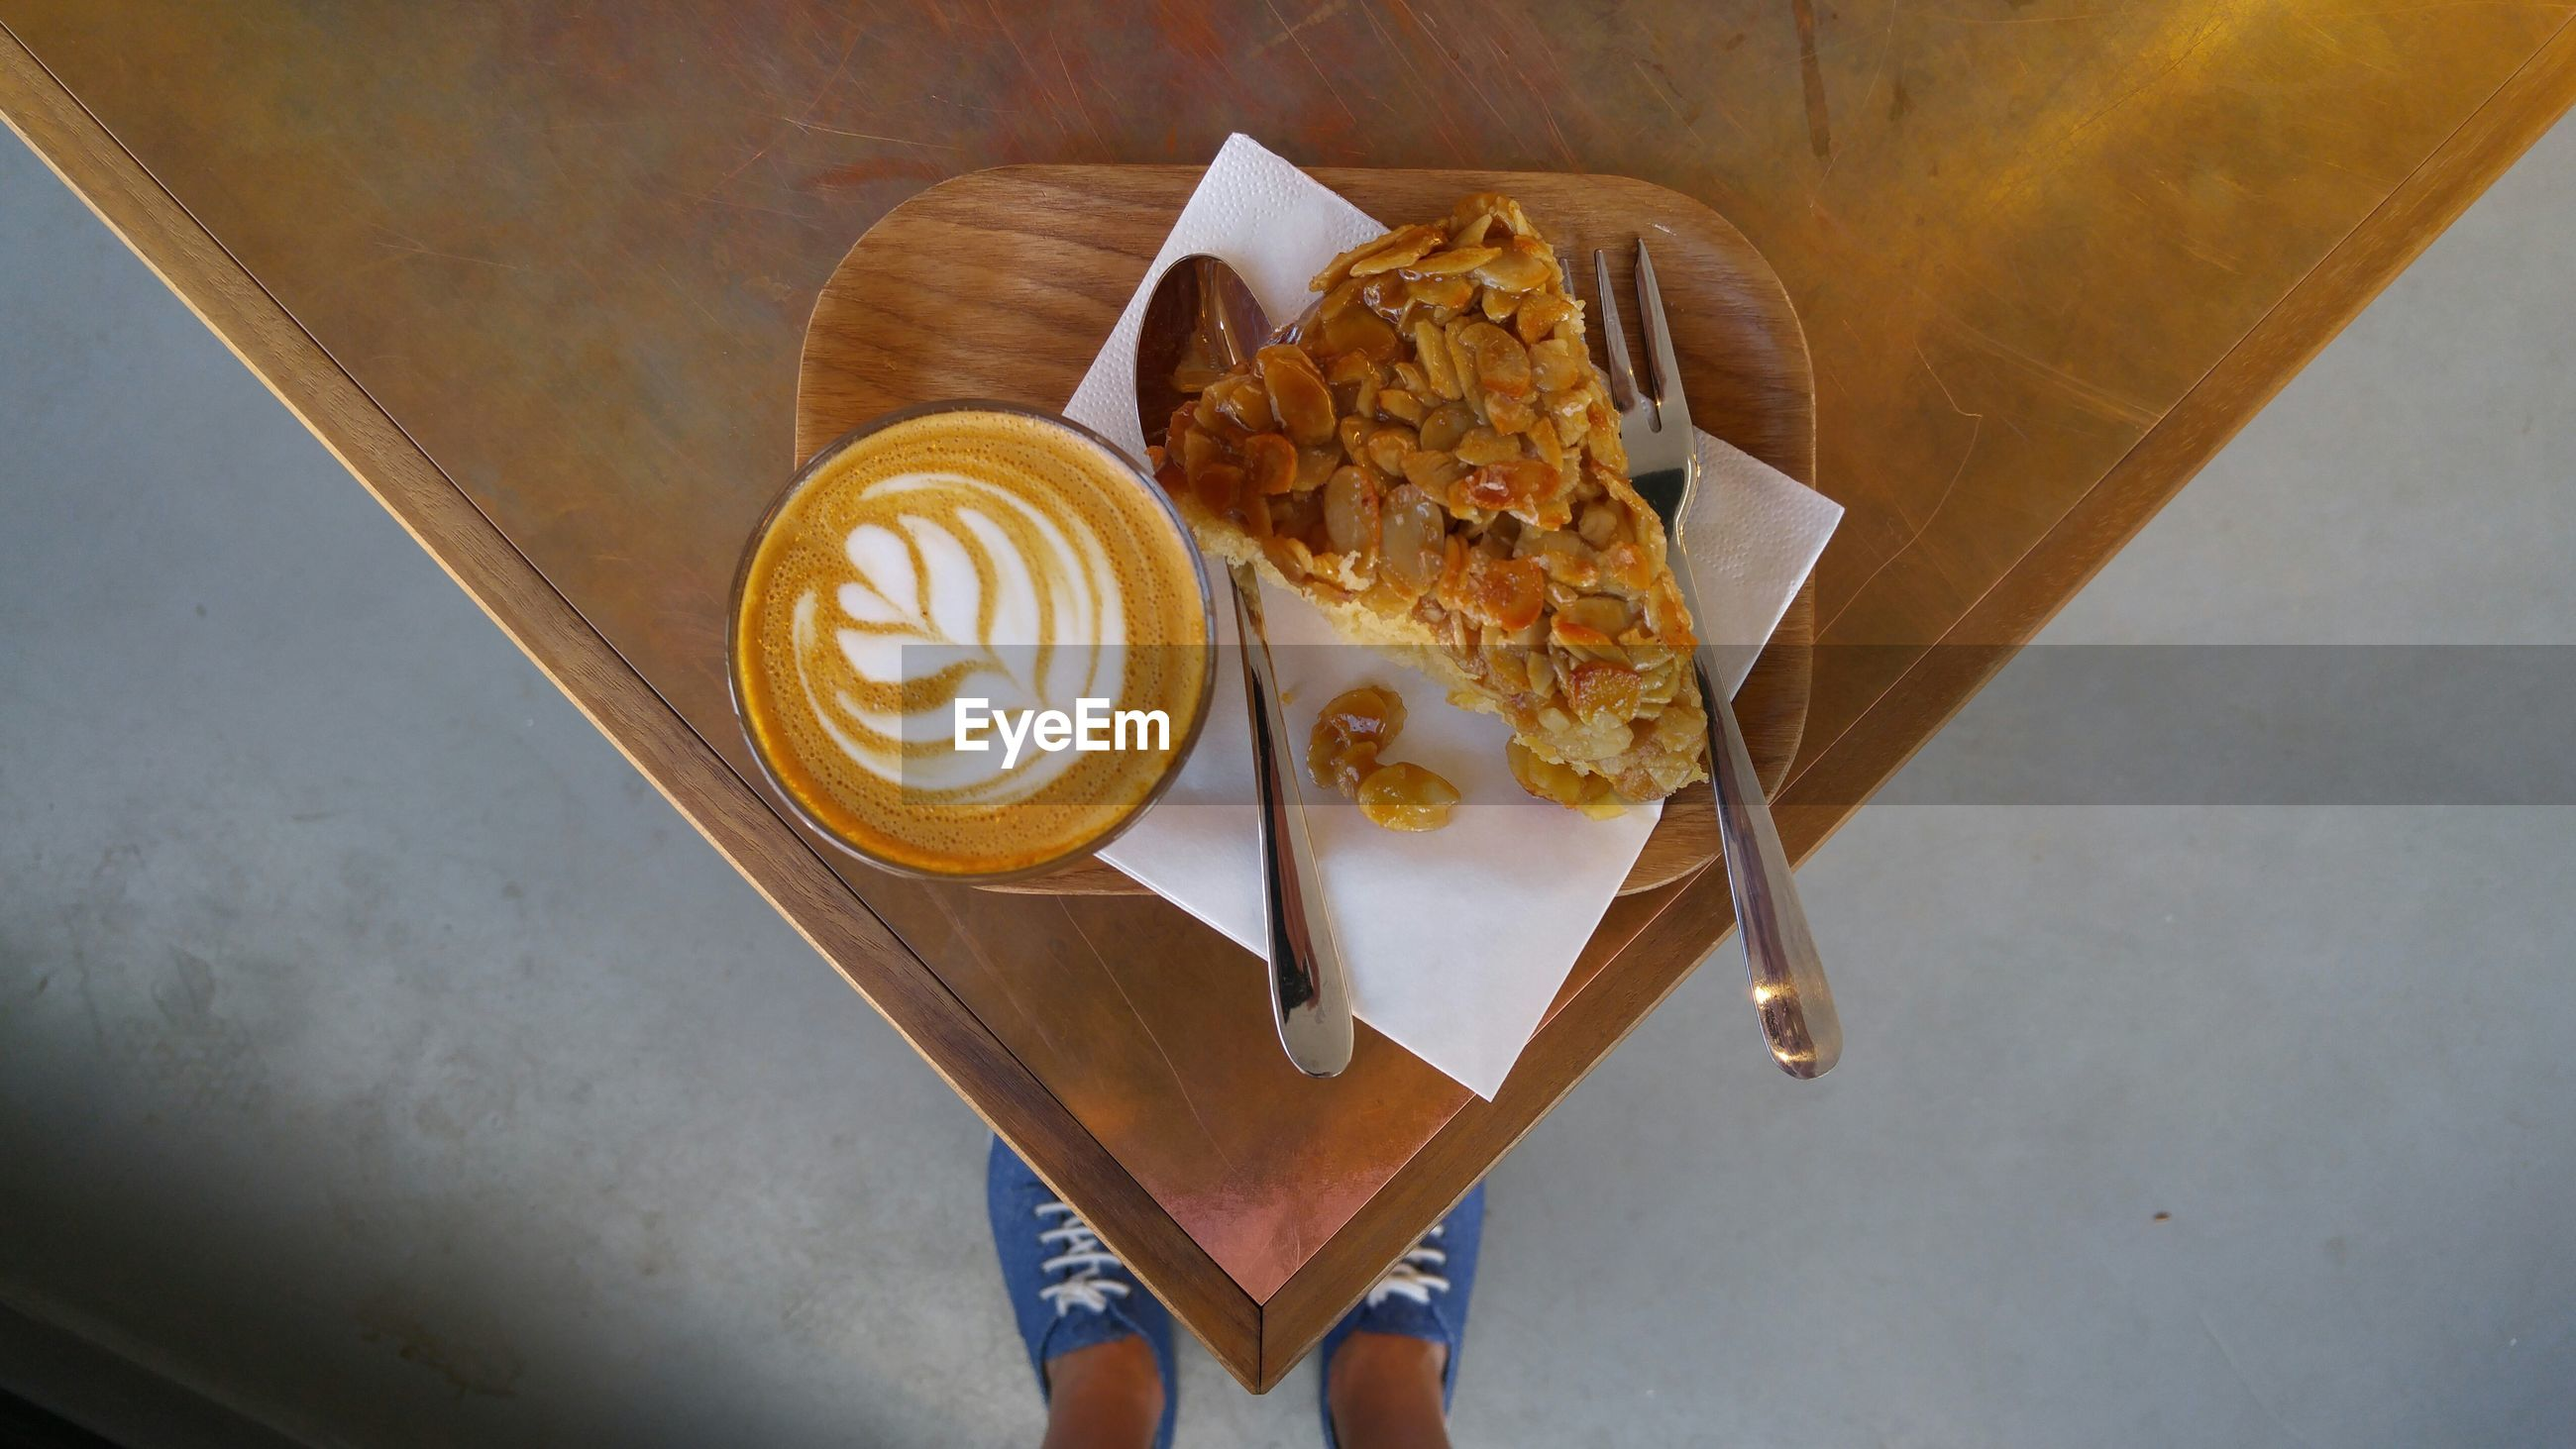 HIGH ANGLE VIEW OF FOOD ON TABLE AT CAFE